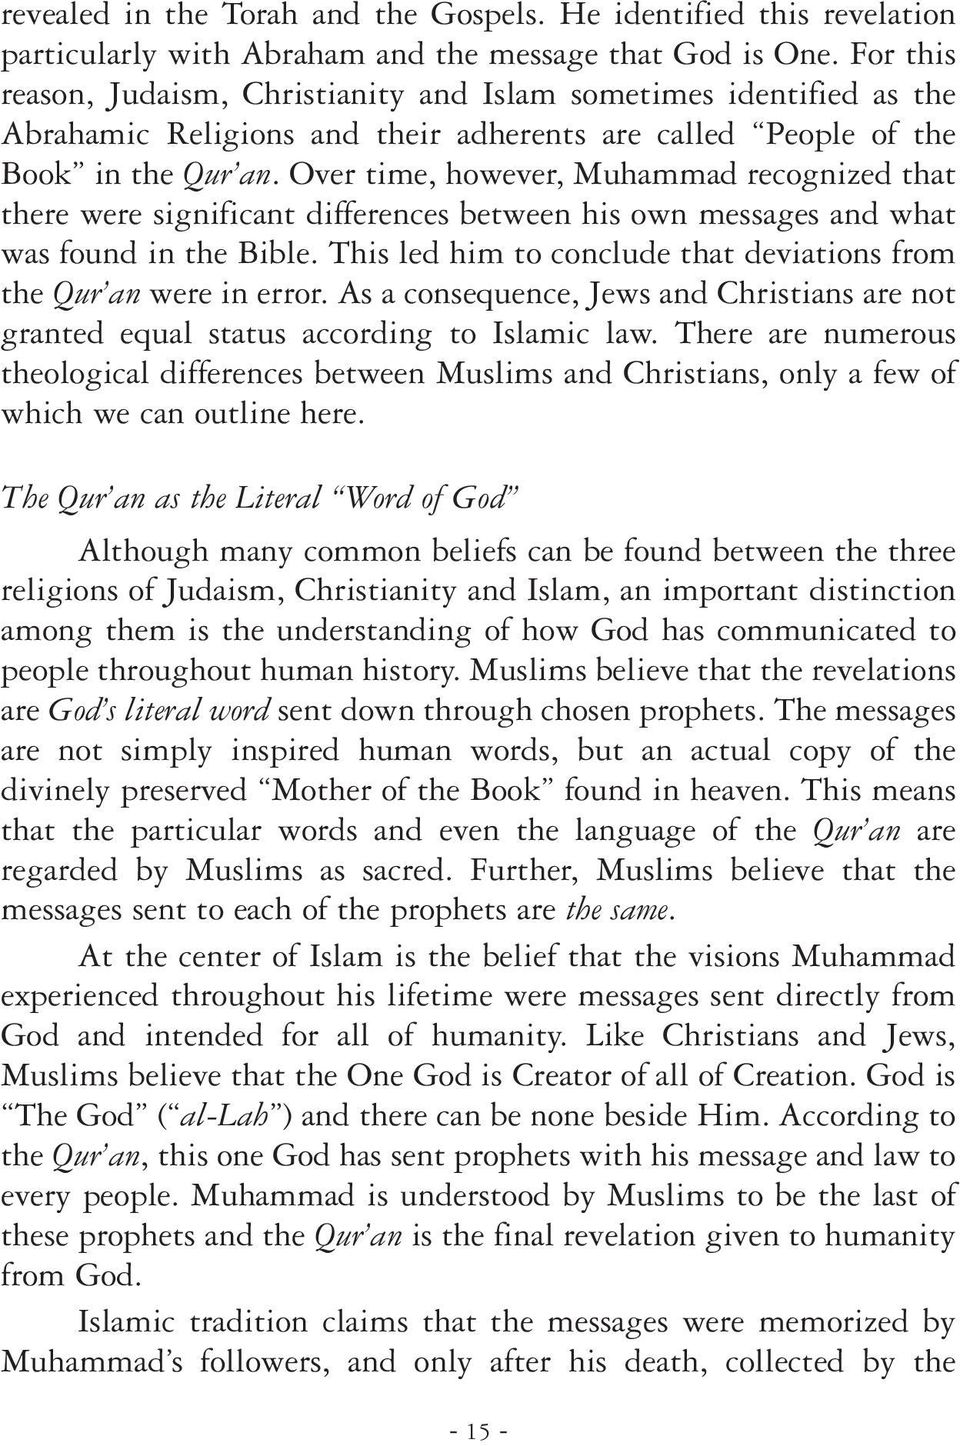 Over time, however, Muhammad recognized that there were significant differences between his own messages and what was found in the Bible.